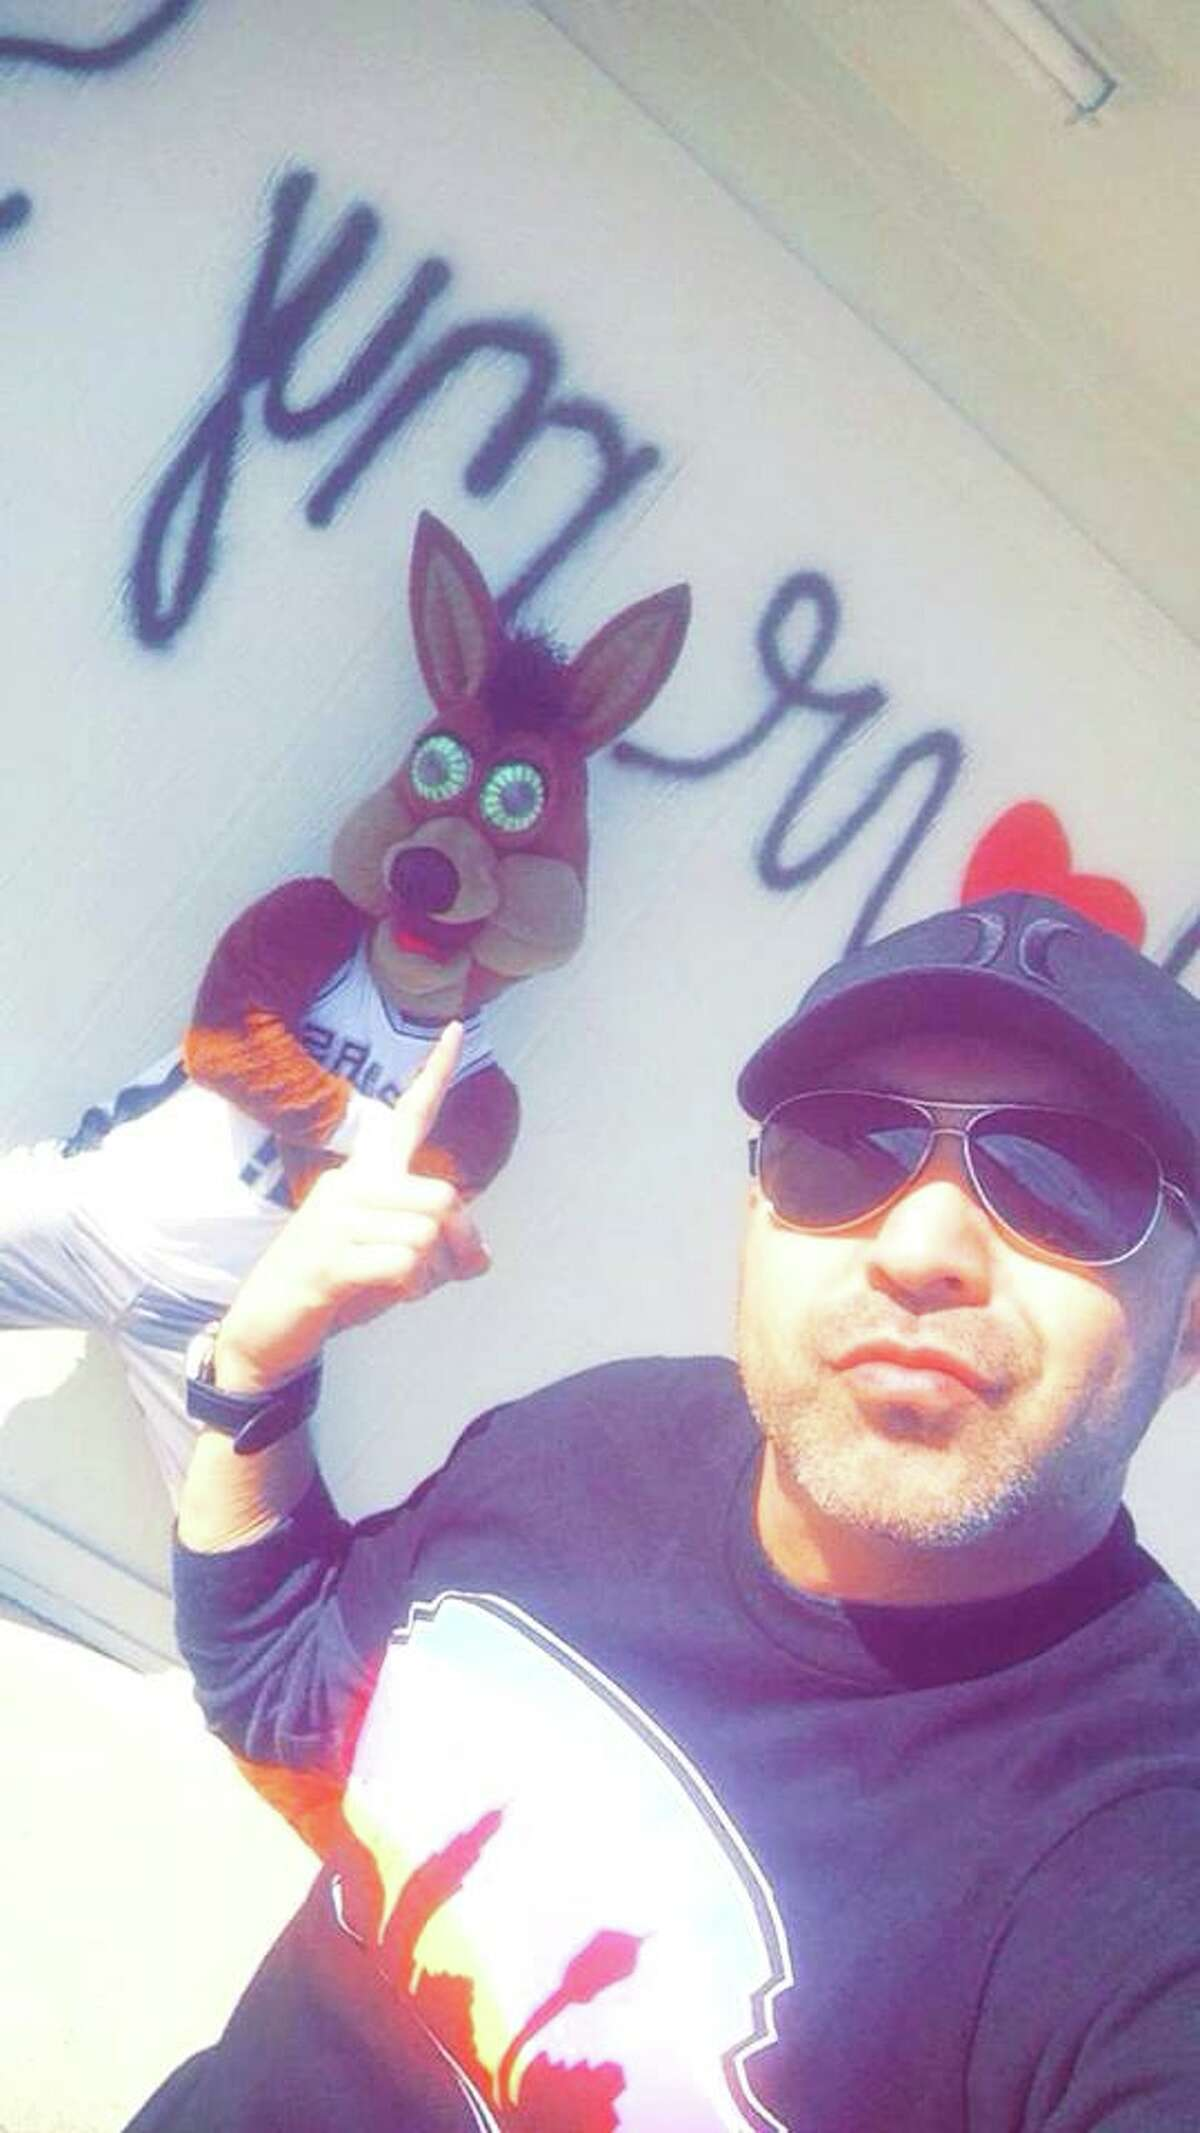 Luis Munoz with the Spurs Coyote posing with his latest piece of